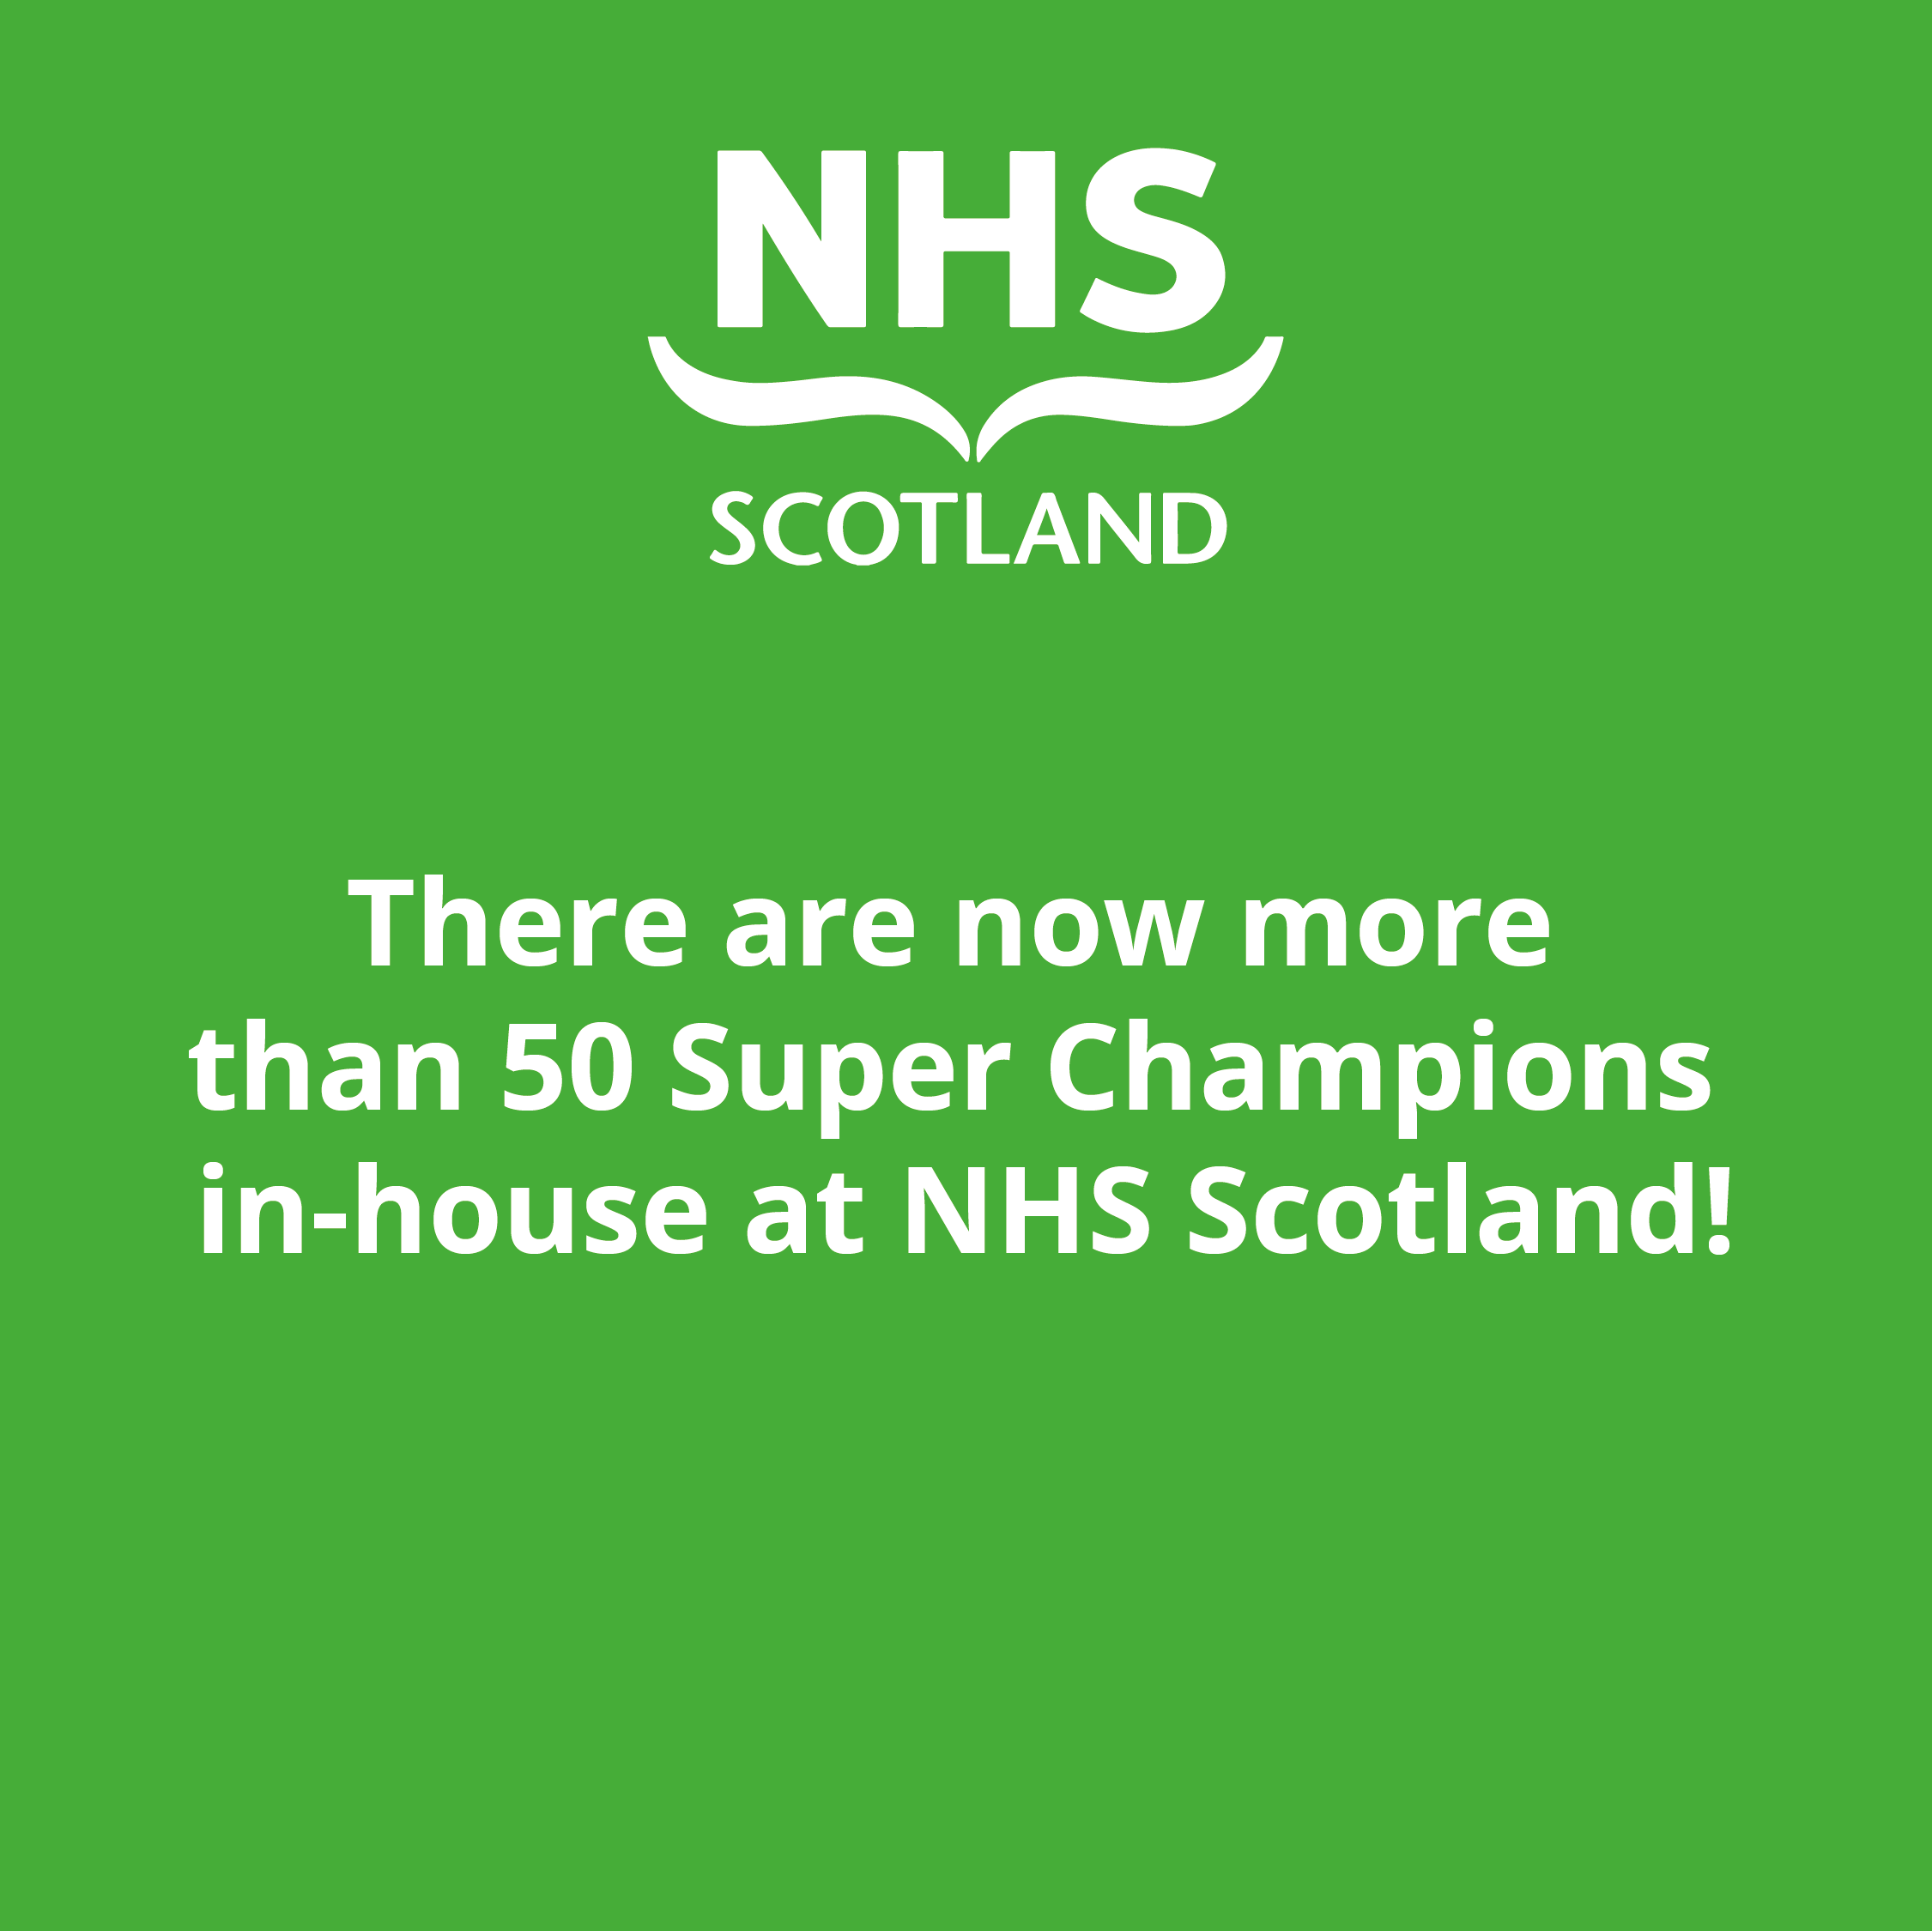 graphic telling readers that there are now 50 super champions at NHS champions